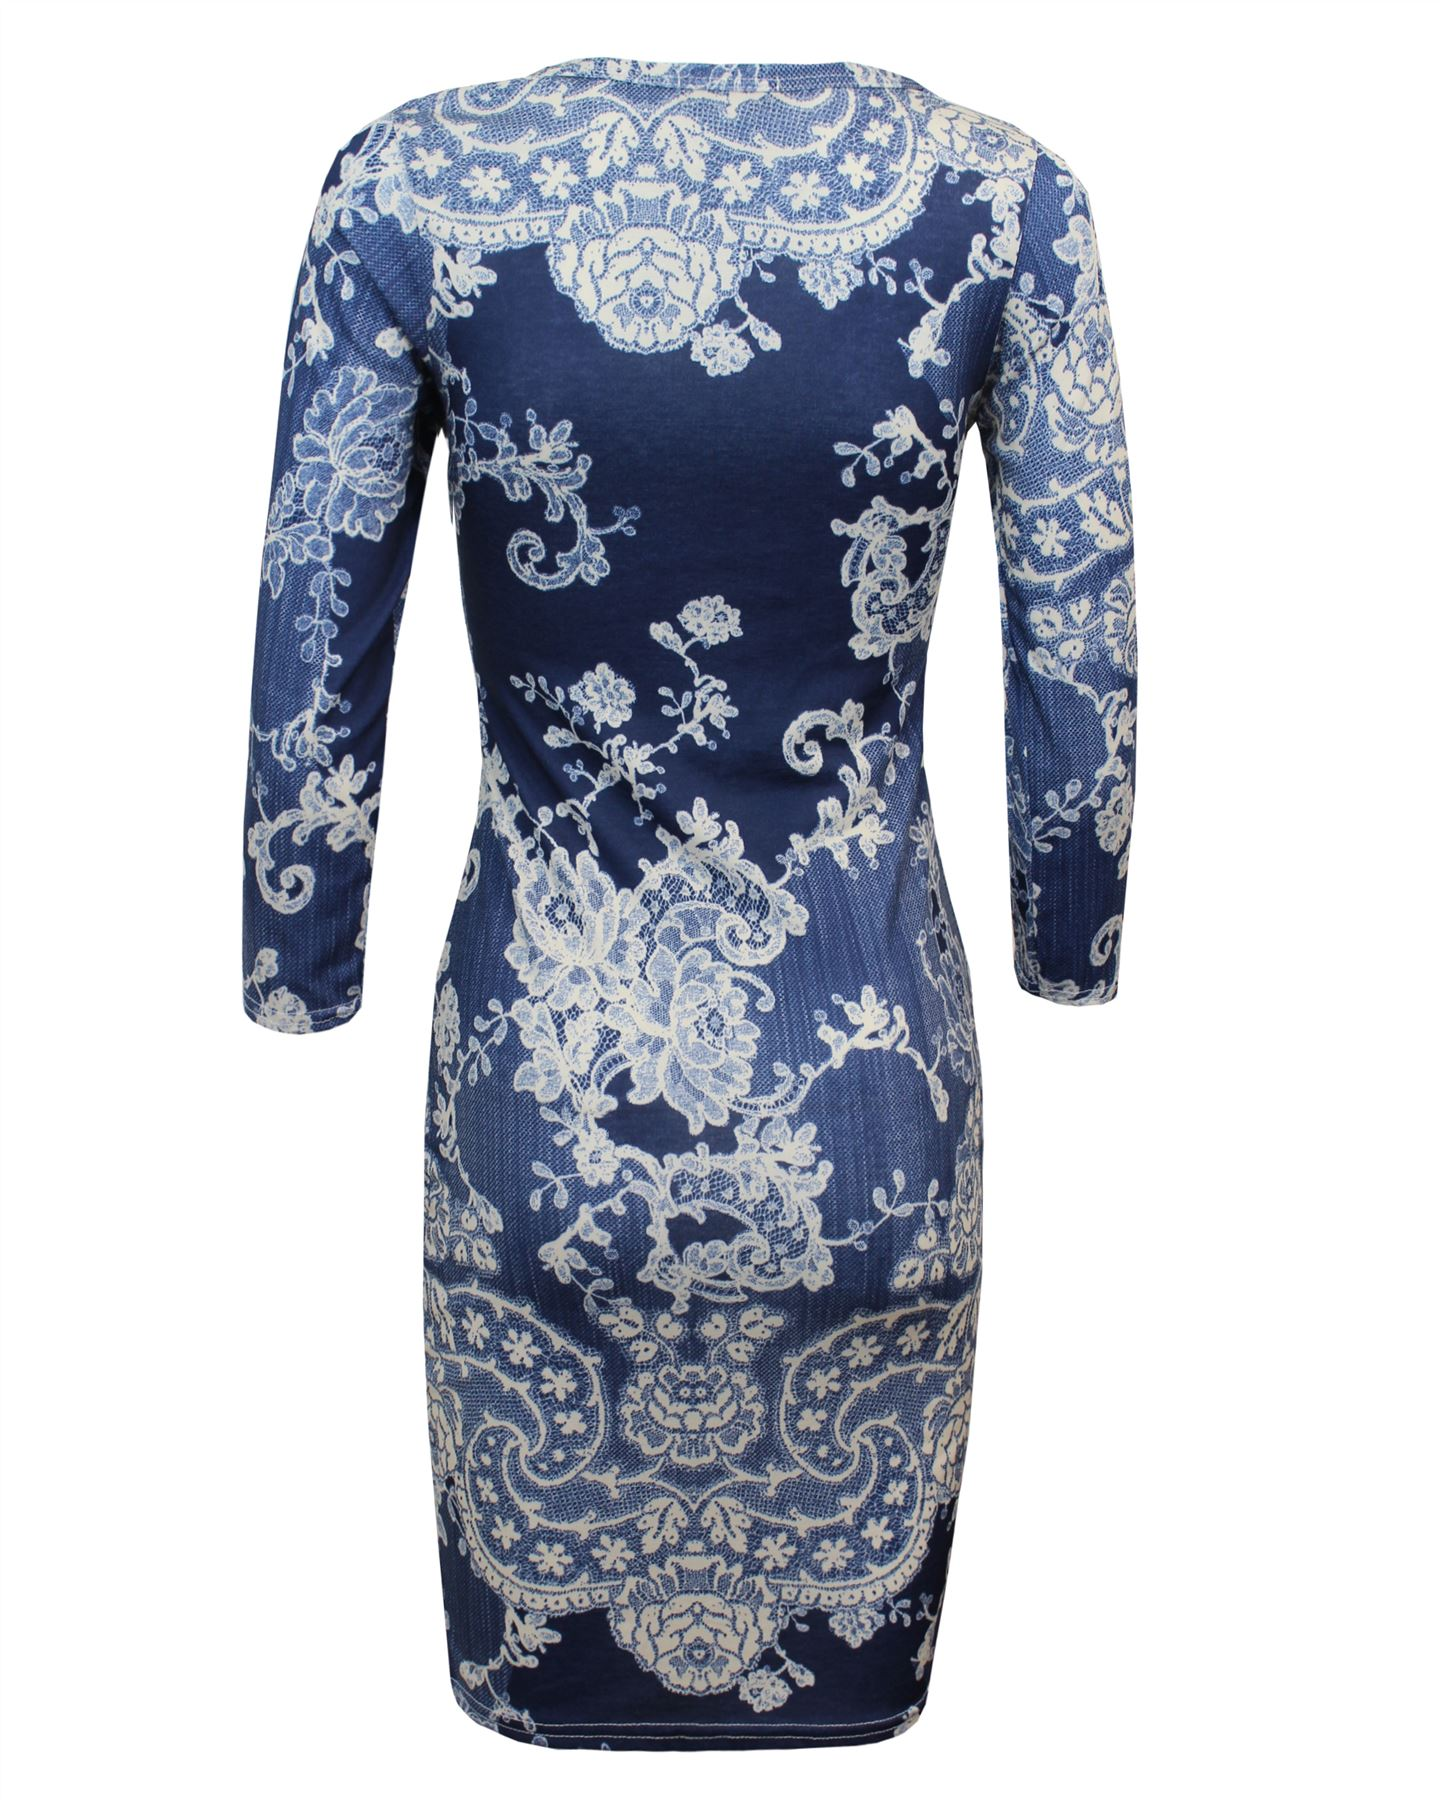 UK 8 10 12 14 Ladies Women Printed Floral ¾ Sleeve Bodycon Midi Party Dress Top